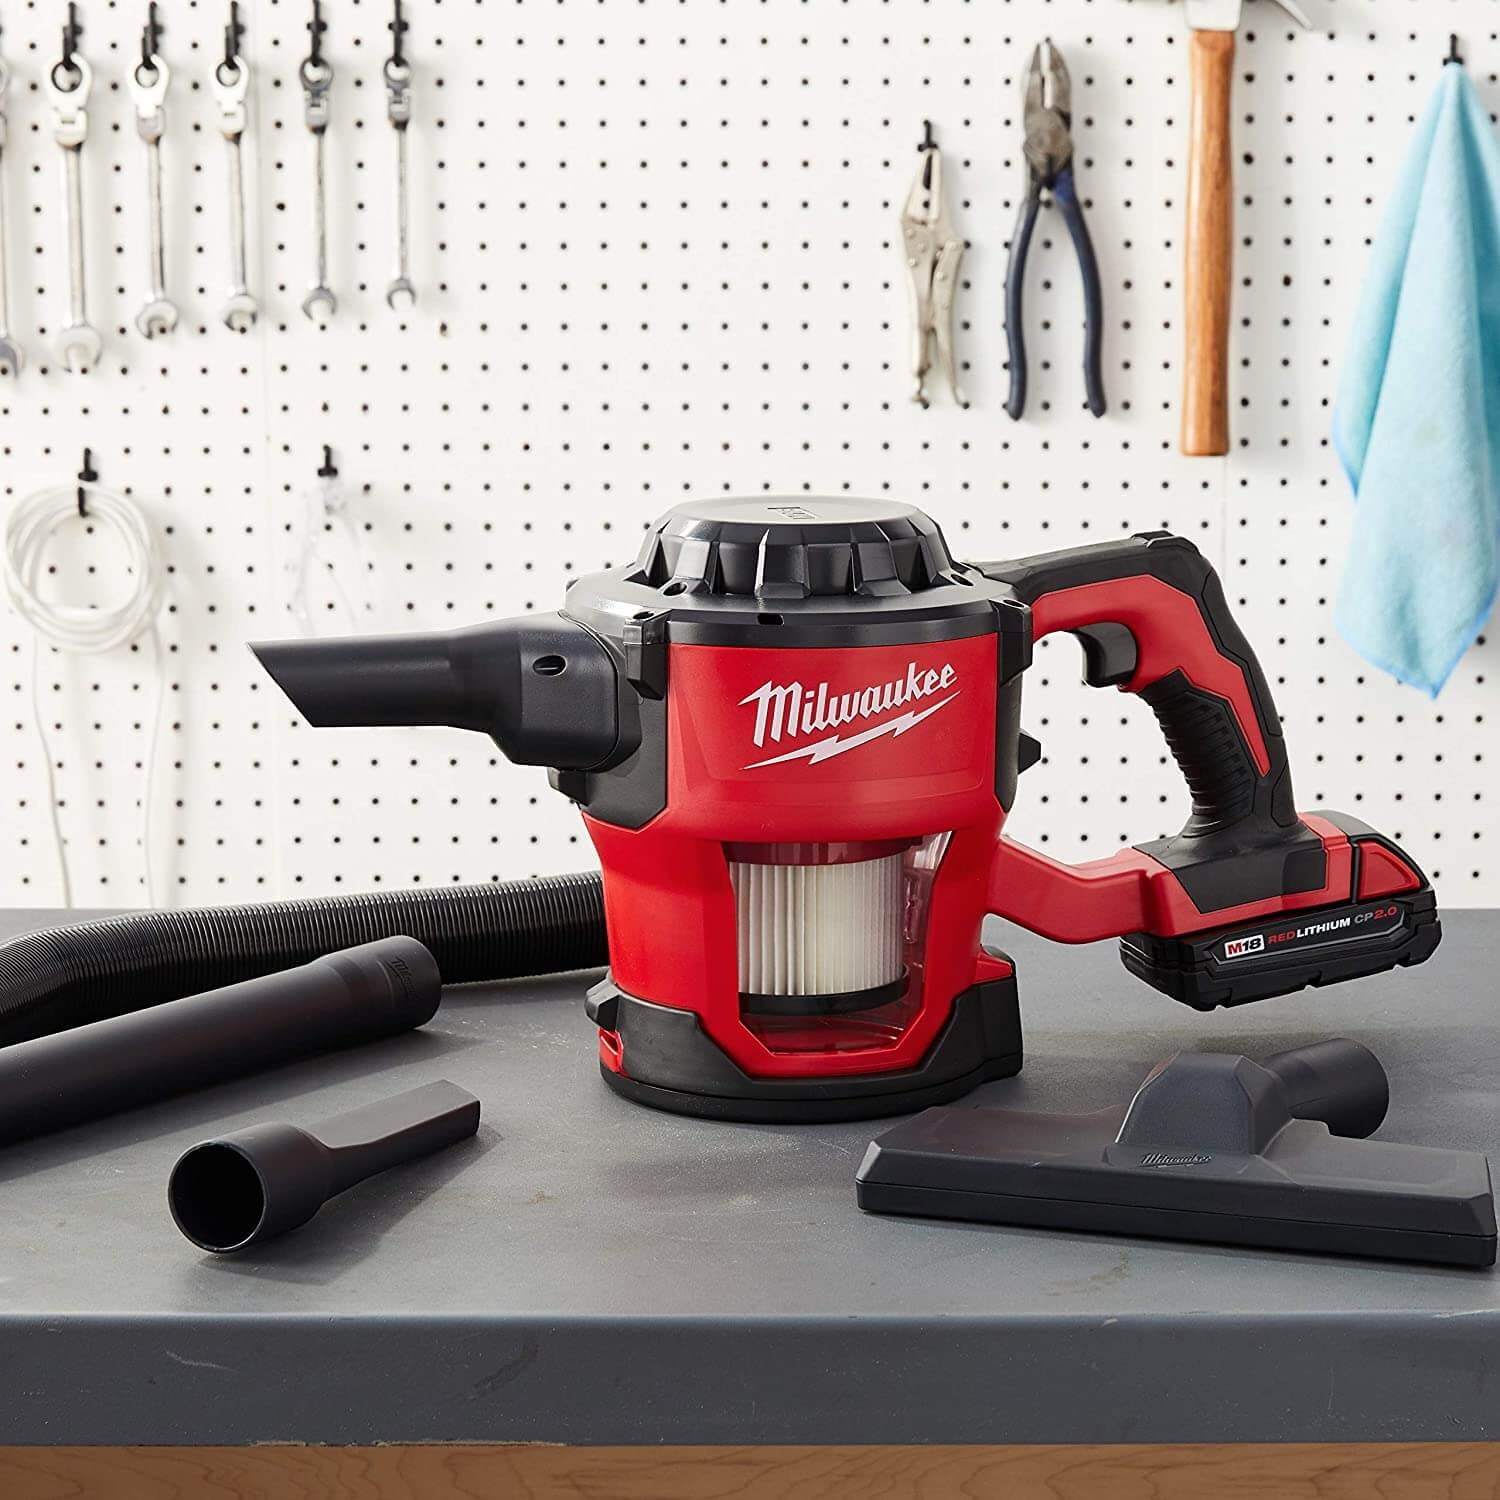 Milwaukee 0882-20 M18 Lithium-Ion Cordless Hand Held Vacuum